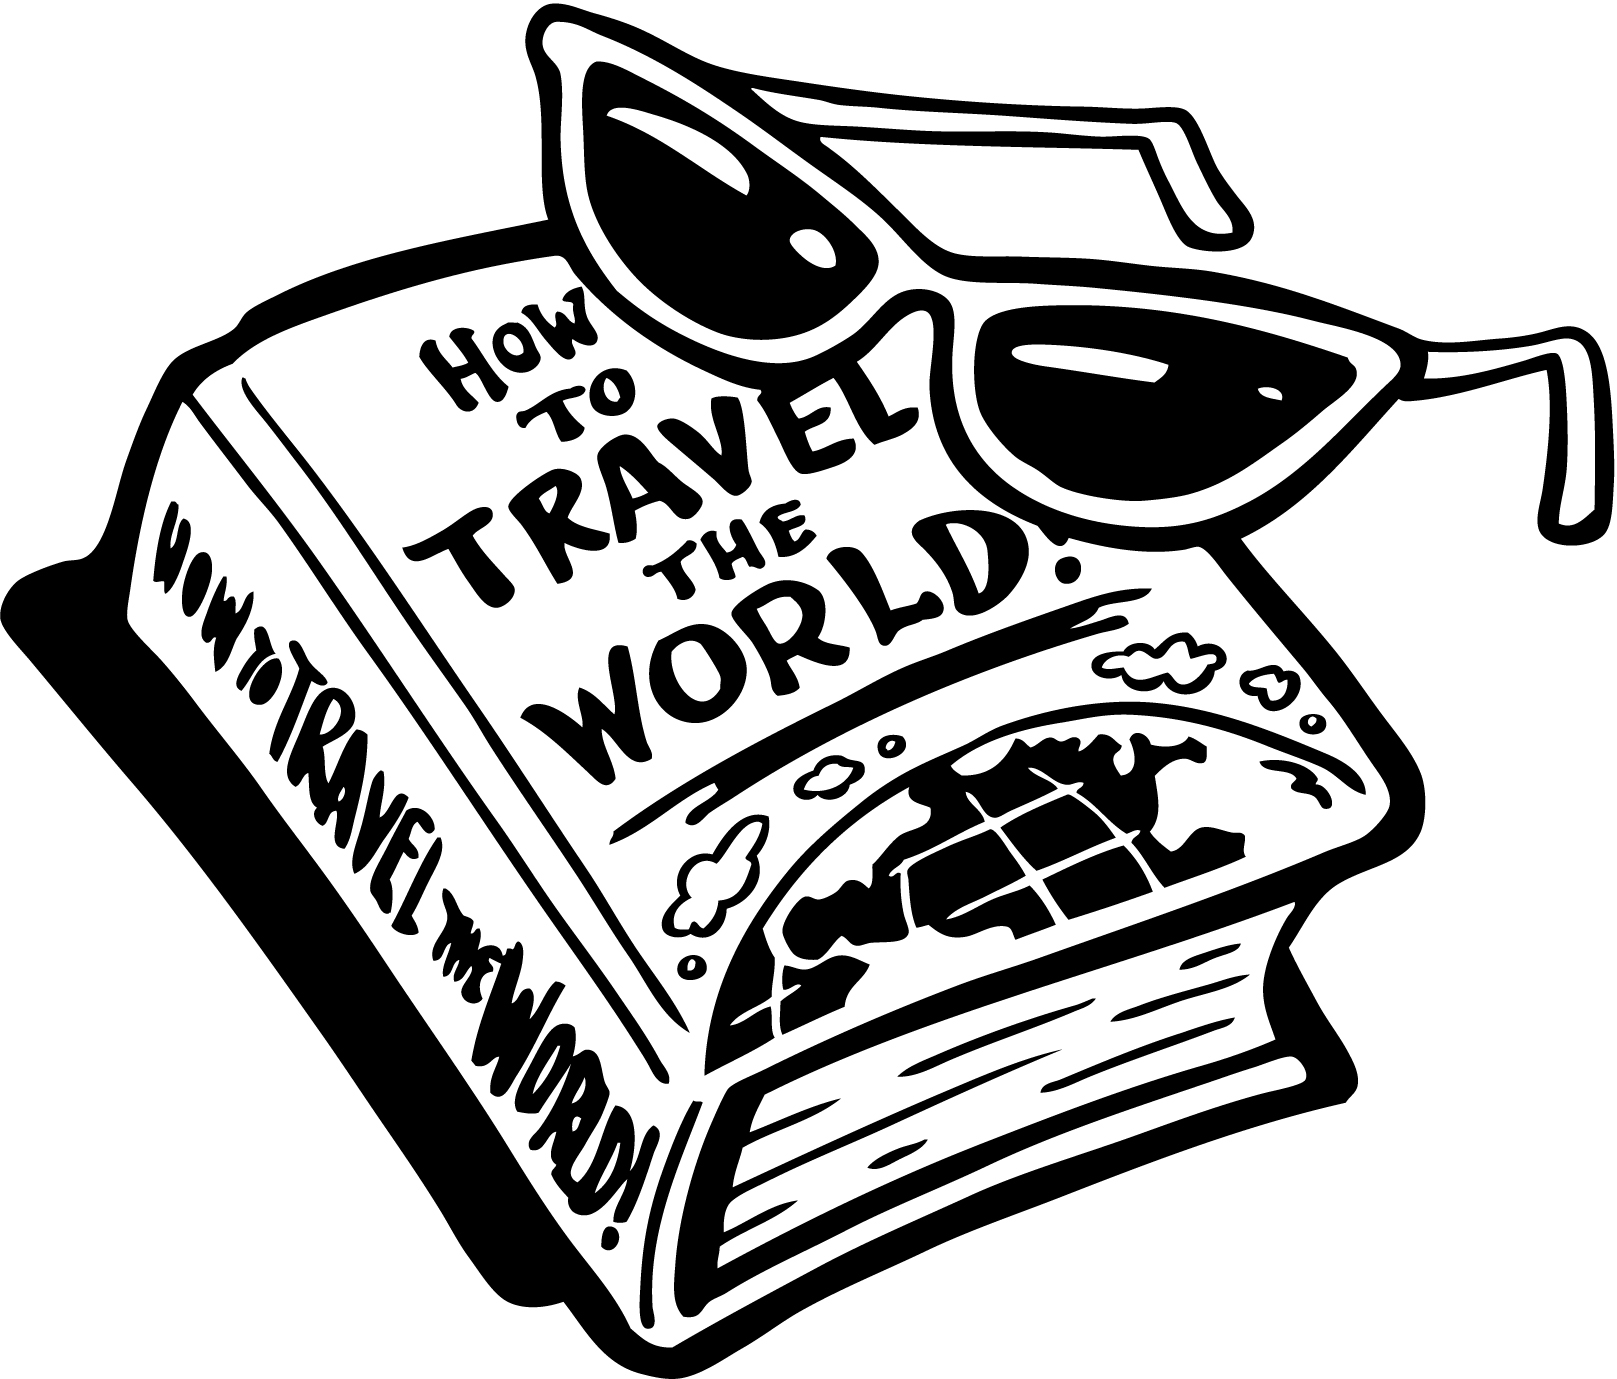 Travel Clip Art For Free Free Clipart Im-Travel clip art for free free clipart images 5-8